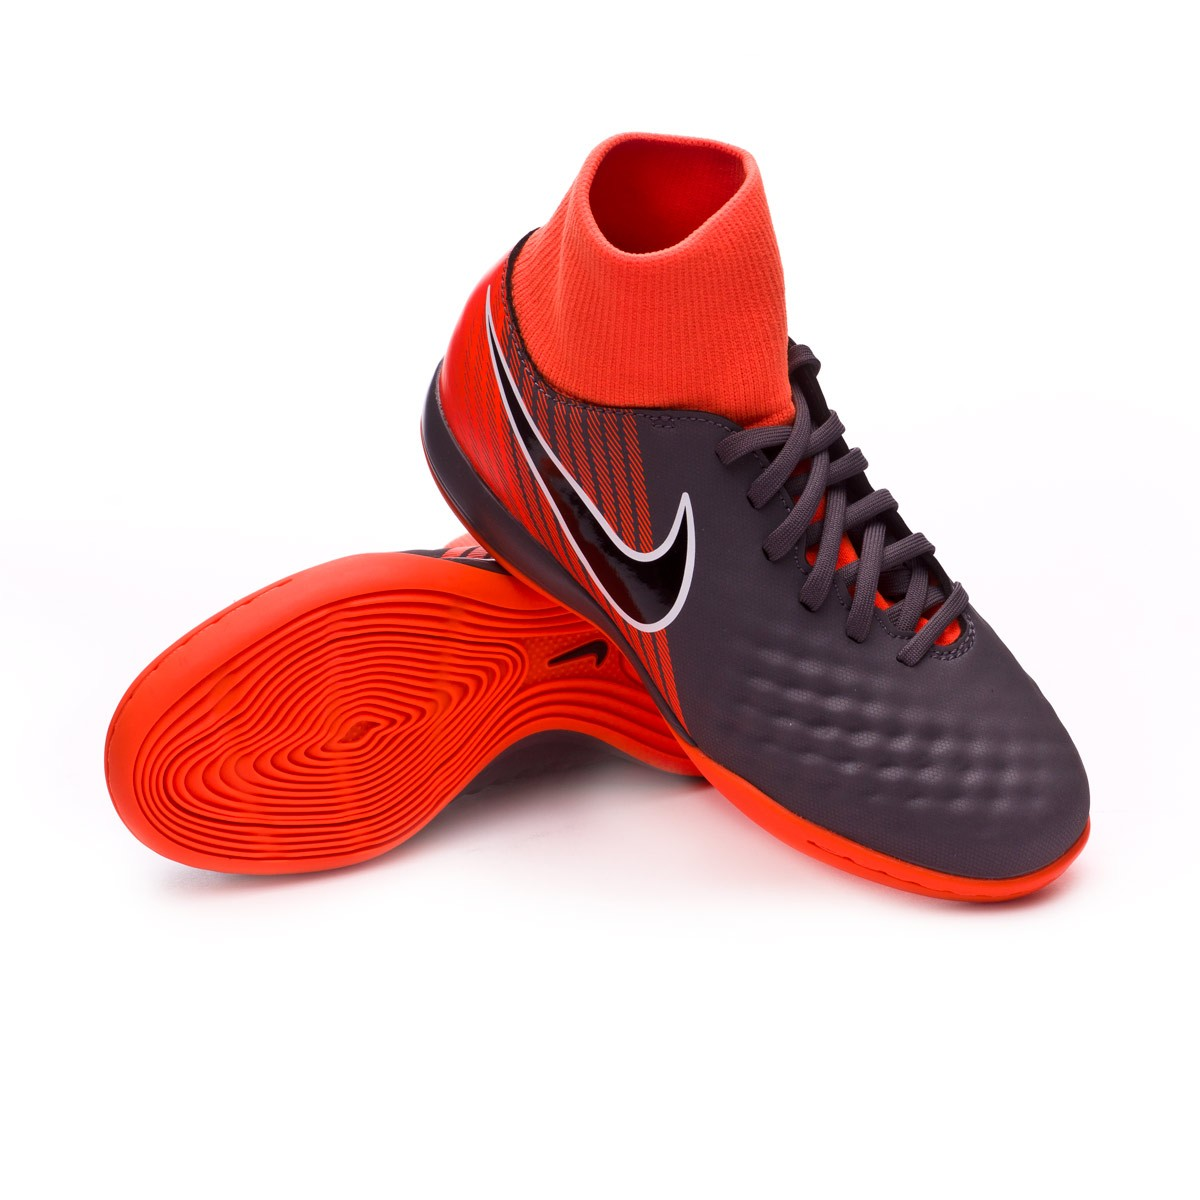 7478ec0a2 Nike Kids Magista ObraX II Academy DF IC Futsal Boot. Dark grey-Black-Total  orange-White ...